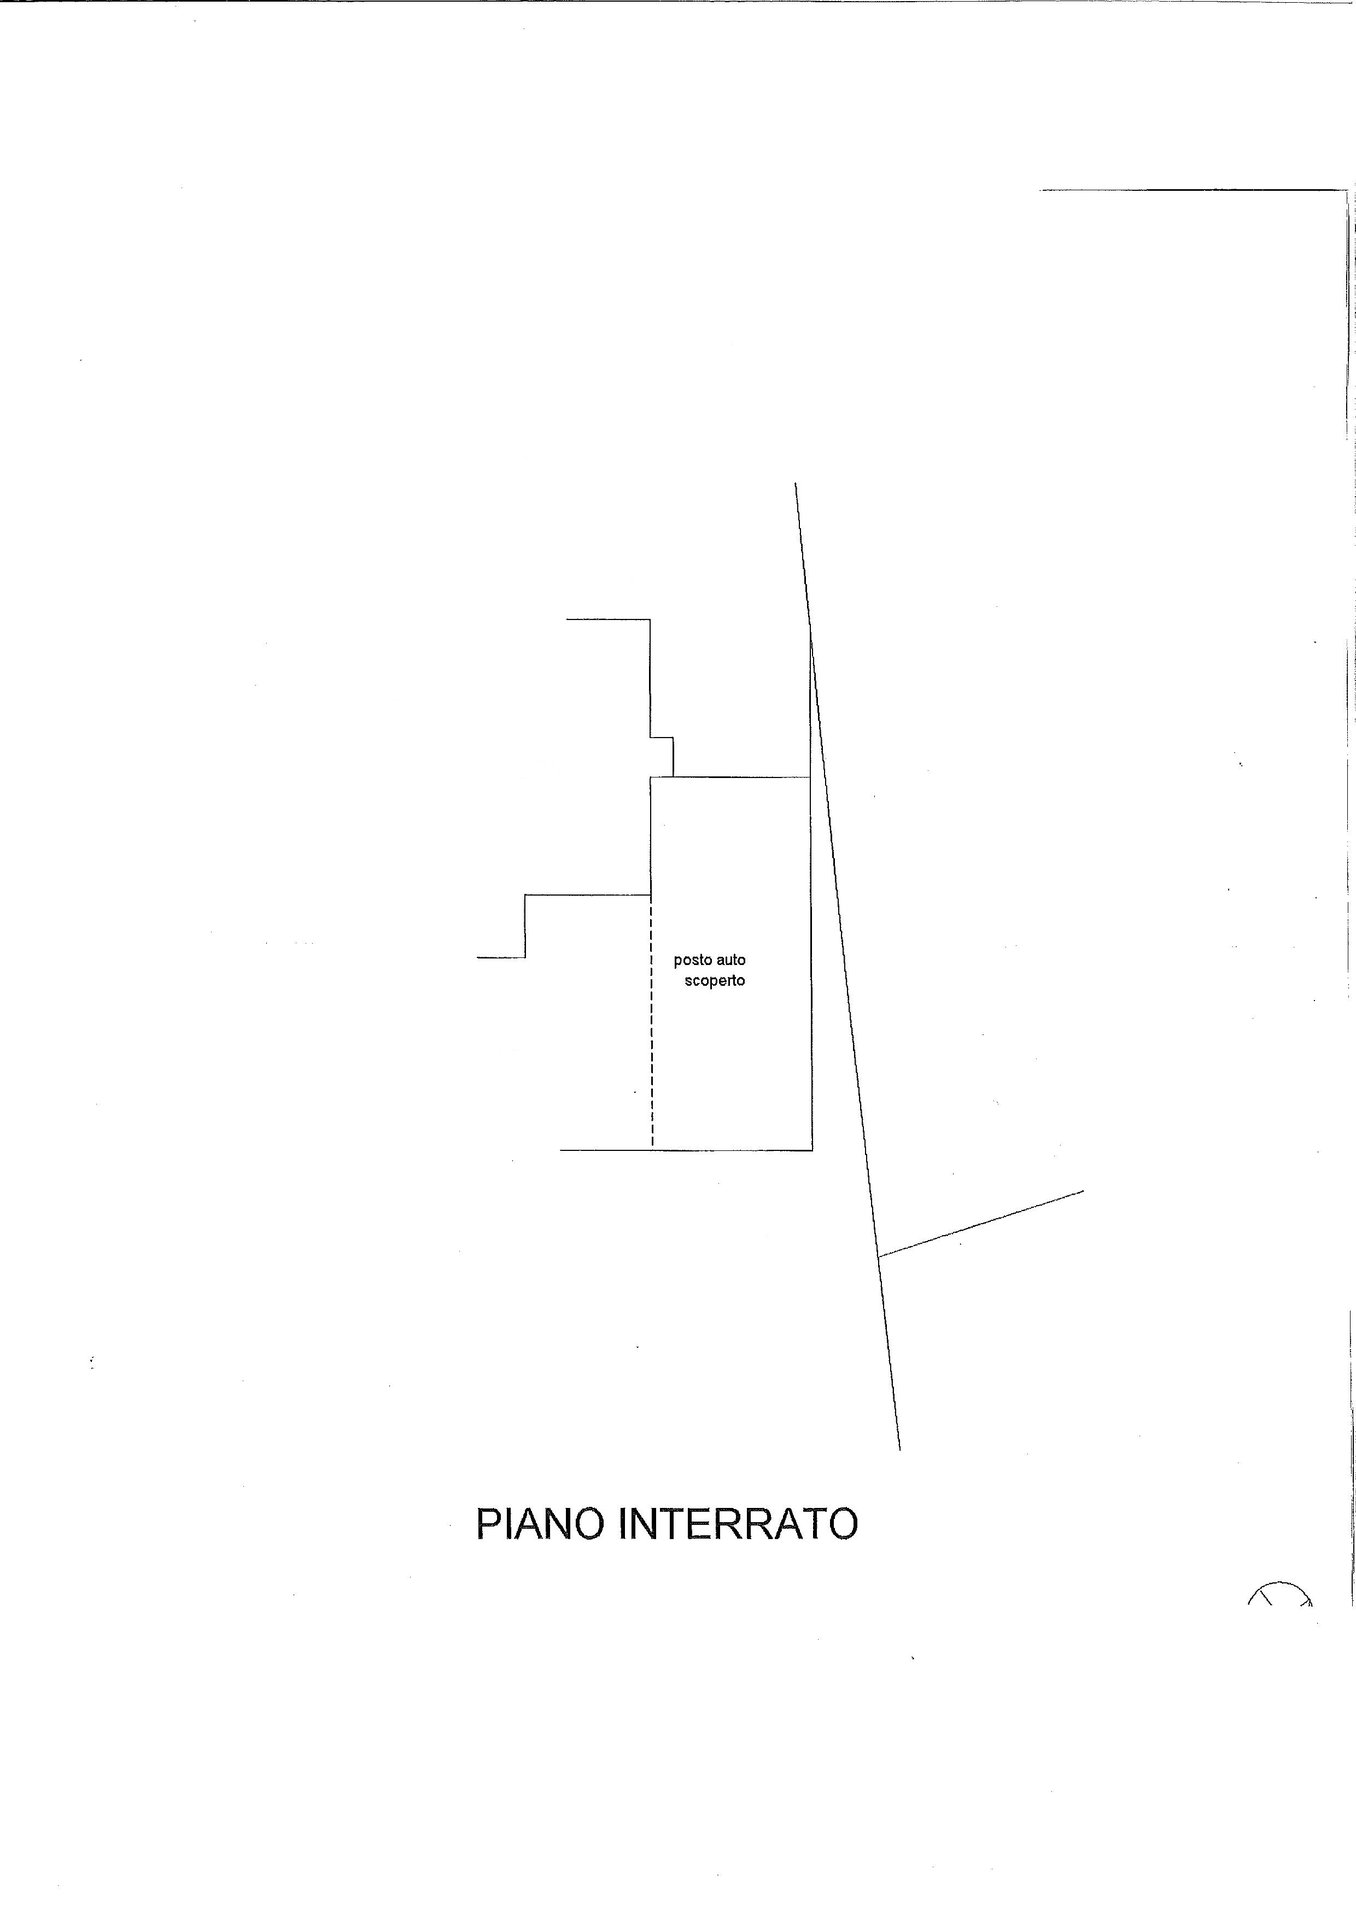 Floor plan of the parking place